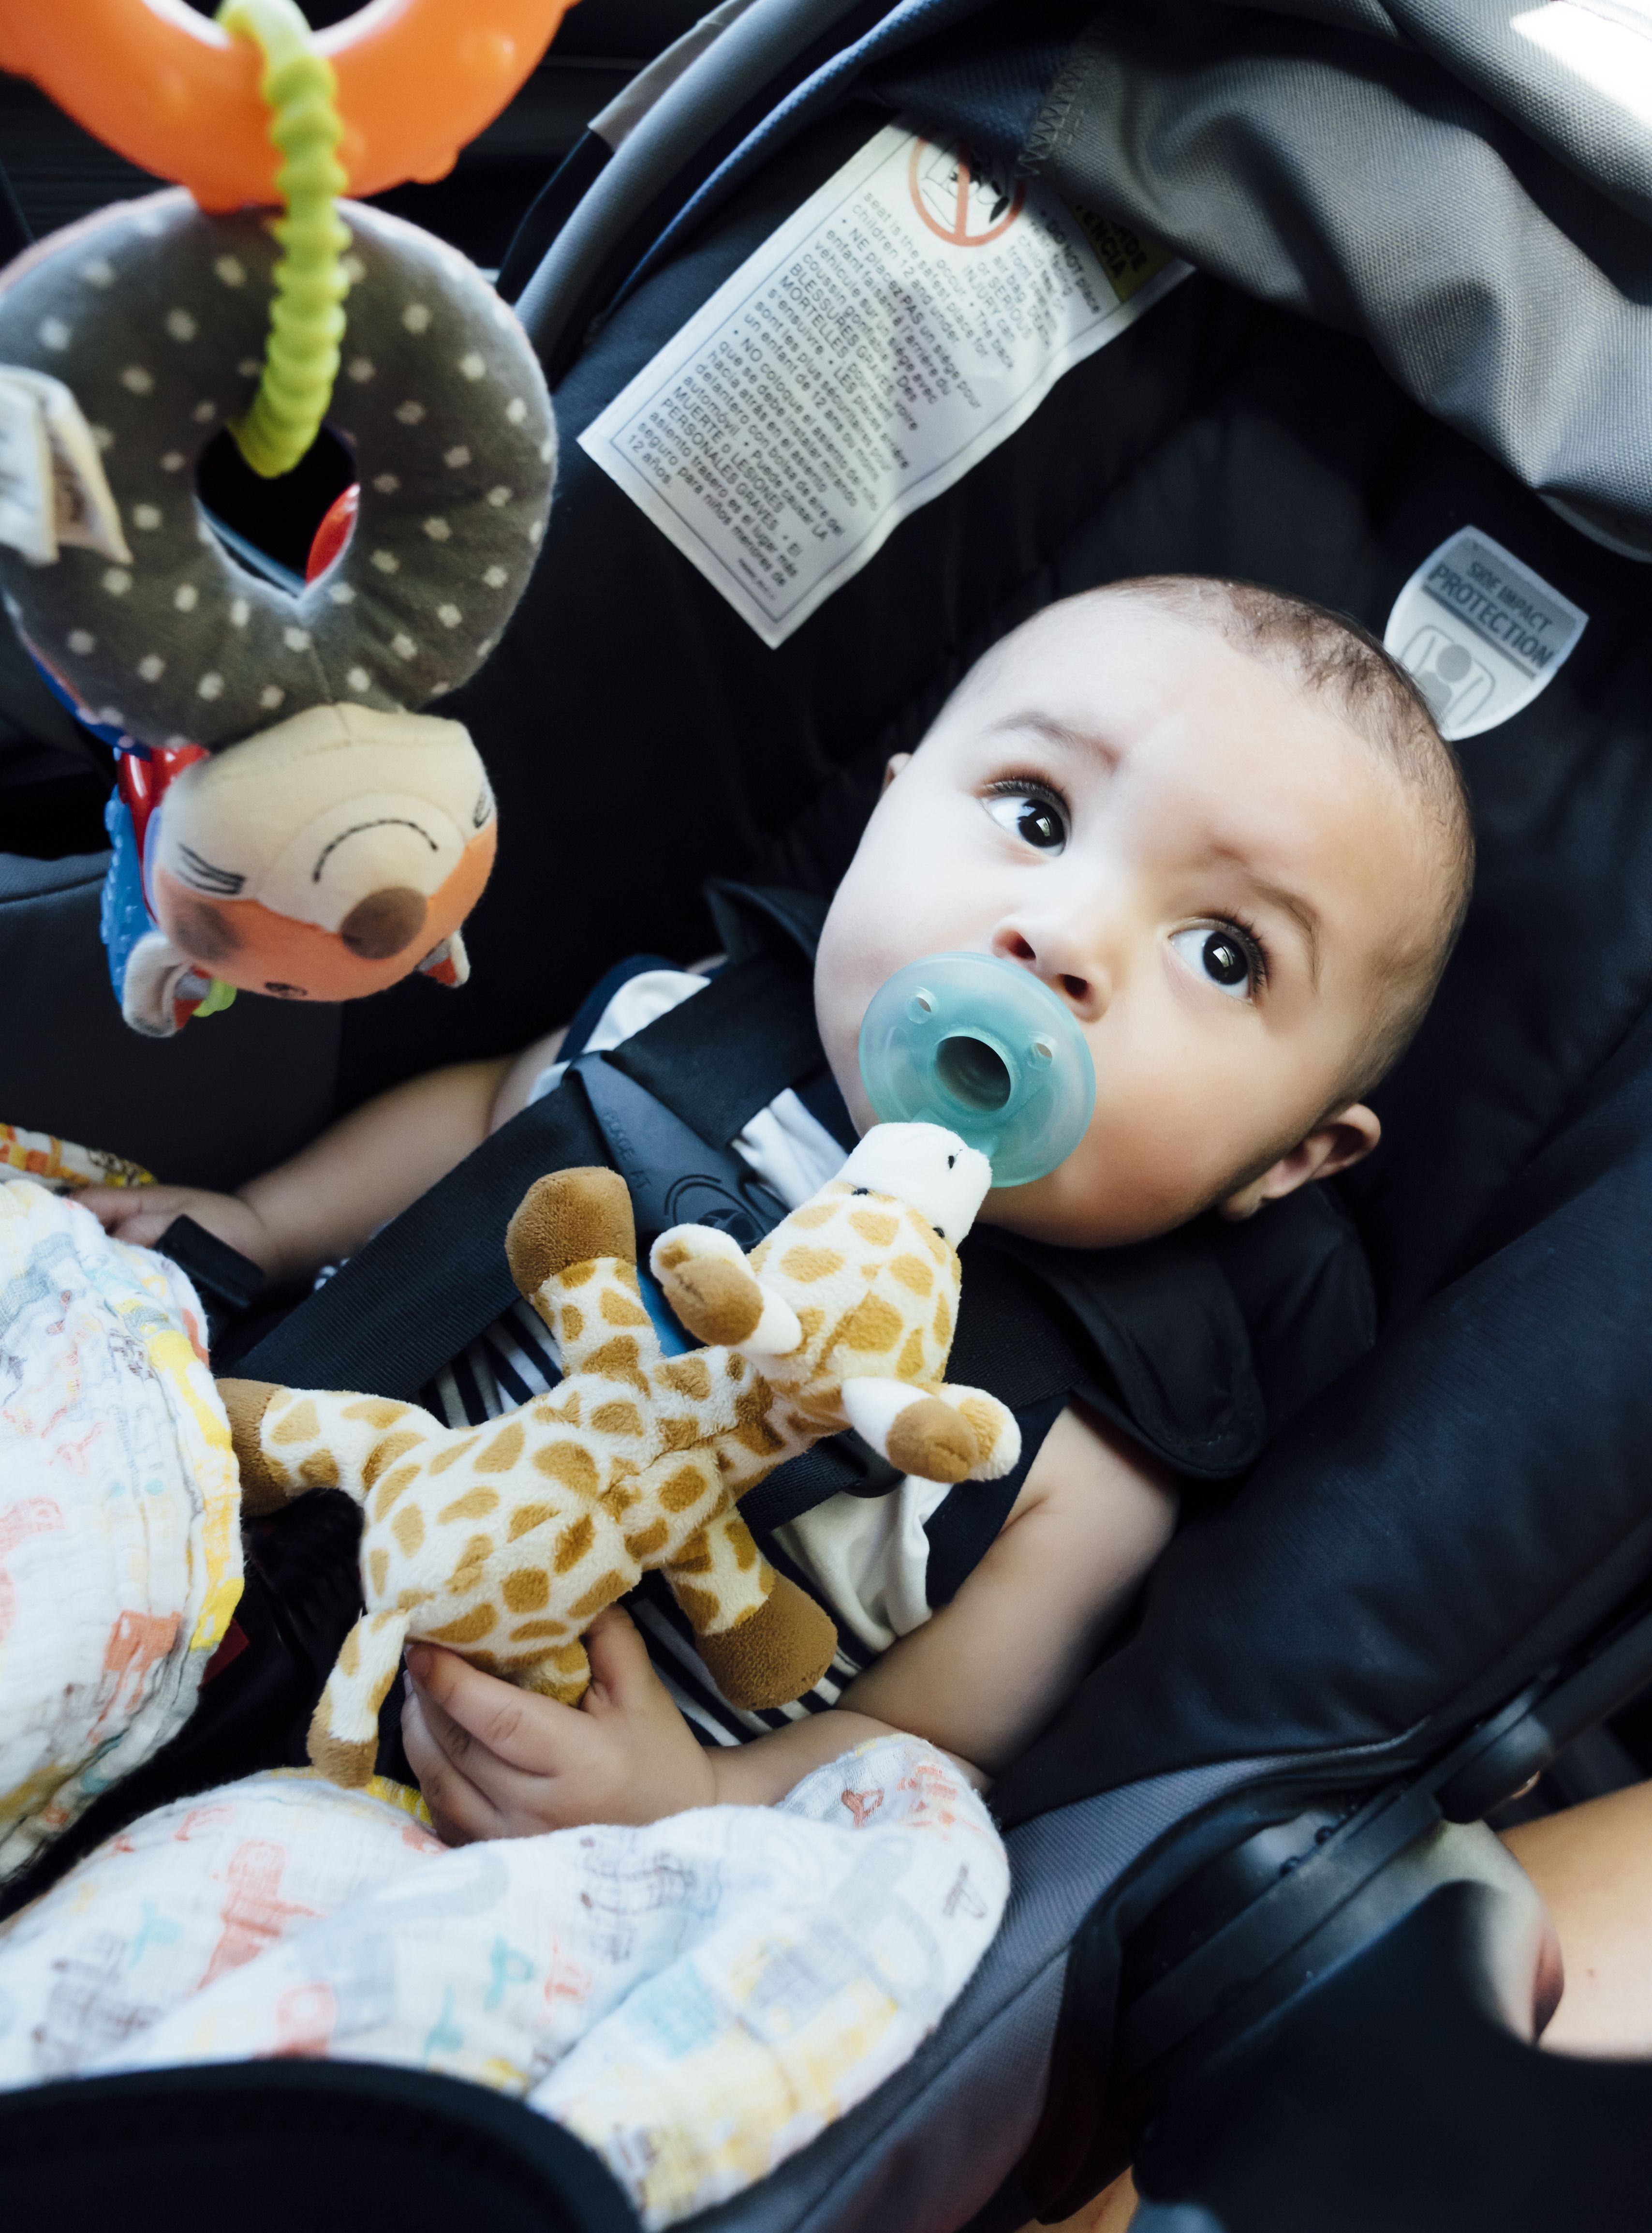 The Most Important Car Seat Safety Check, According To